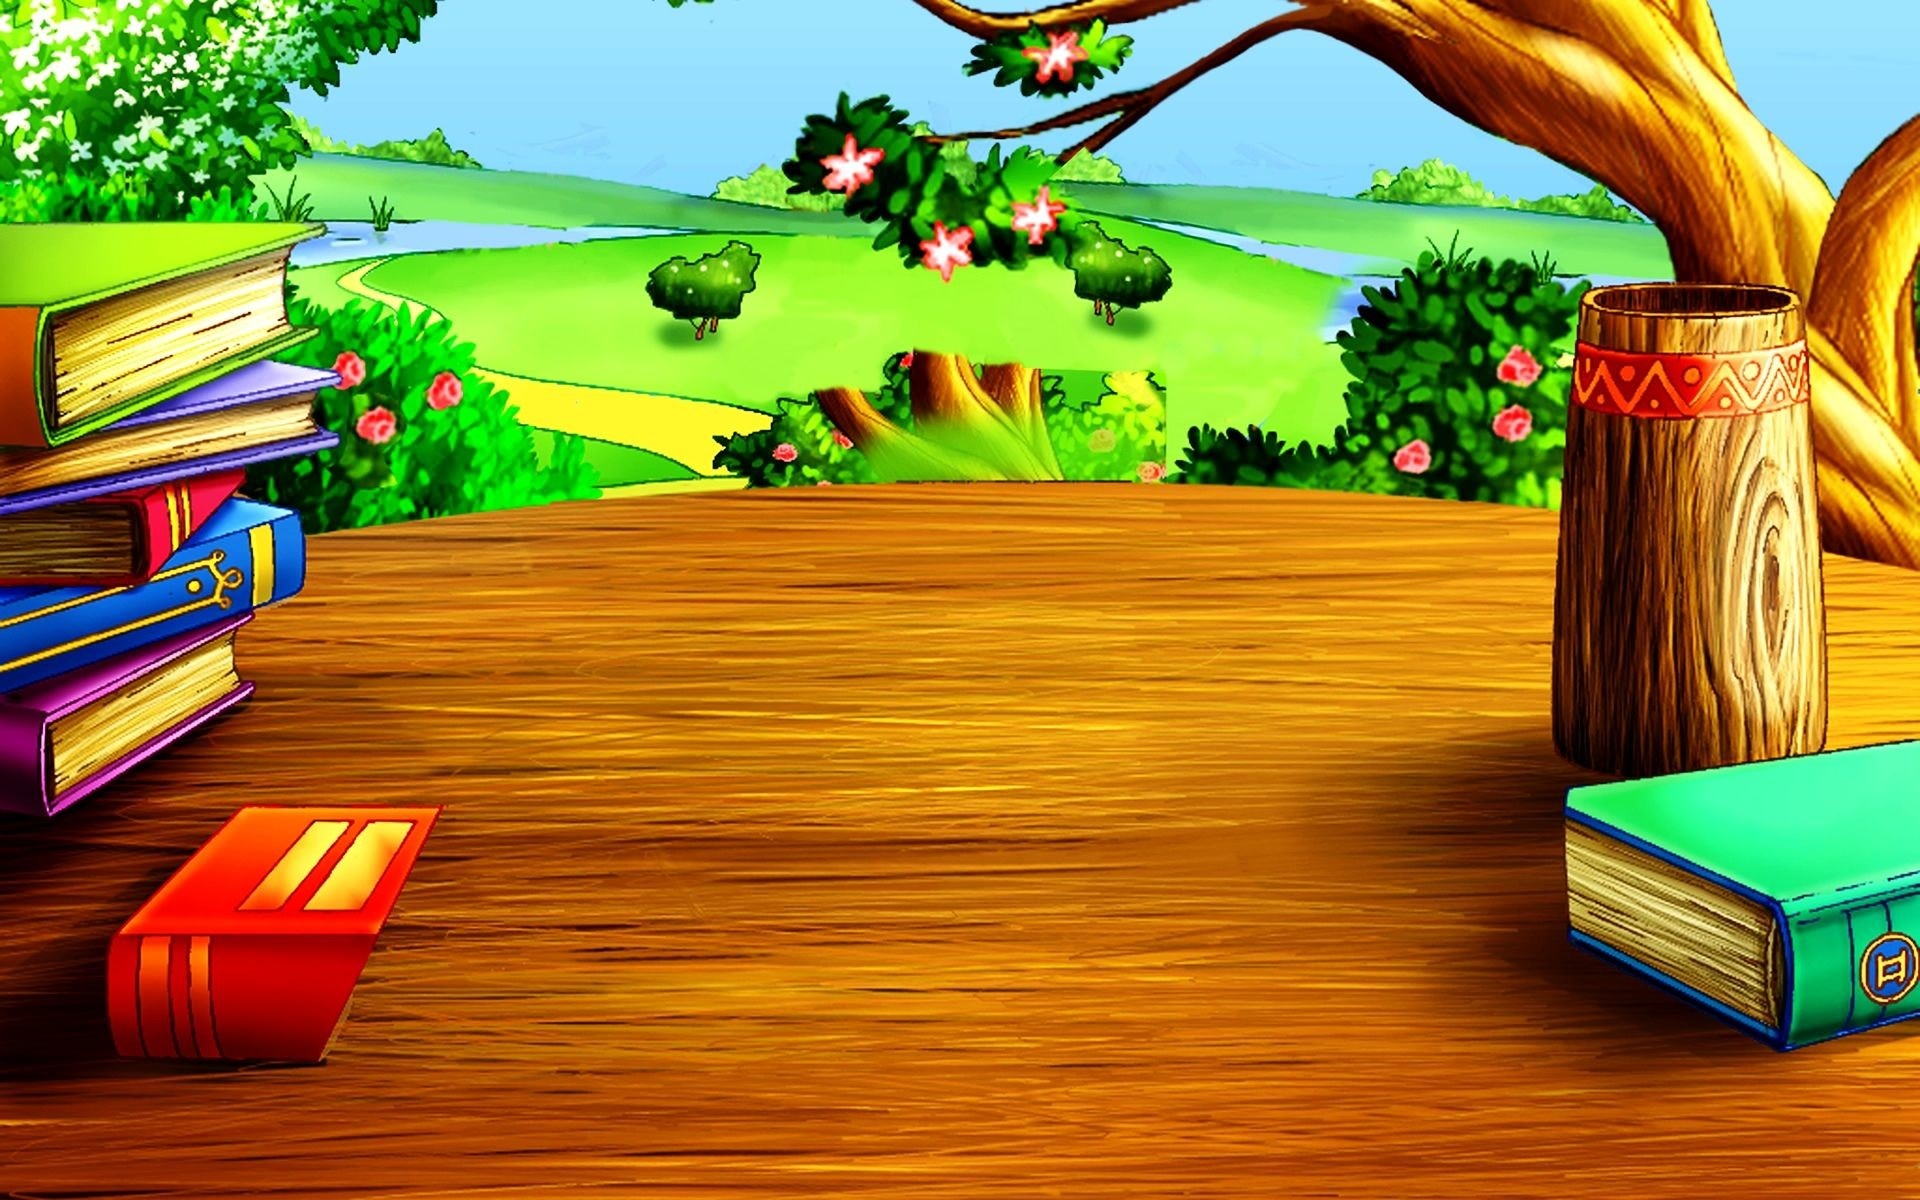 1920x1200 Cute Backgrounds For Kids Cartoon Books photos of Simple Reasons .